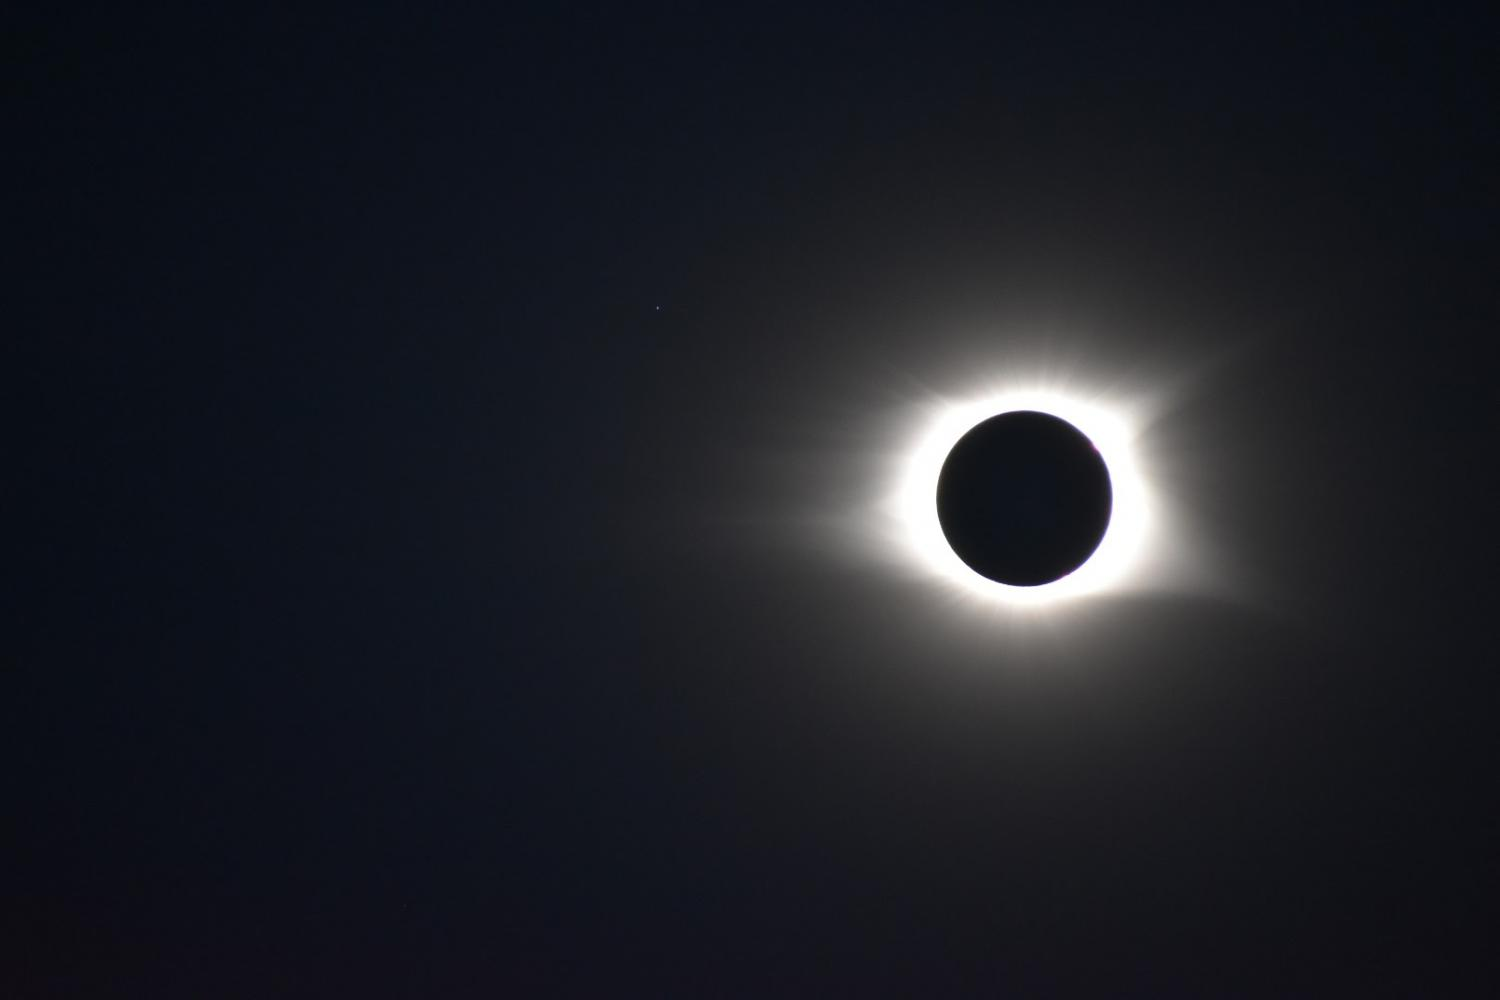 This photo of eclipse totality was taken by Jeff Jones in South Carolina.  Notice the star in the upper left.